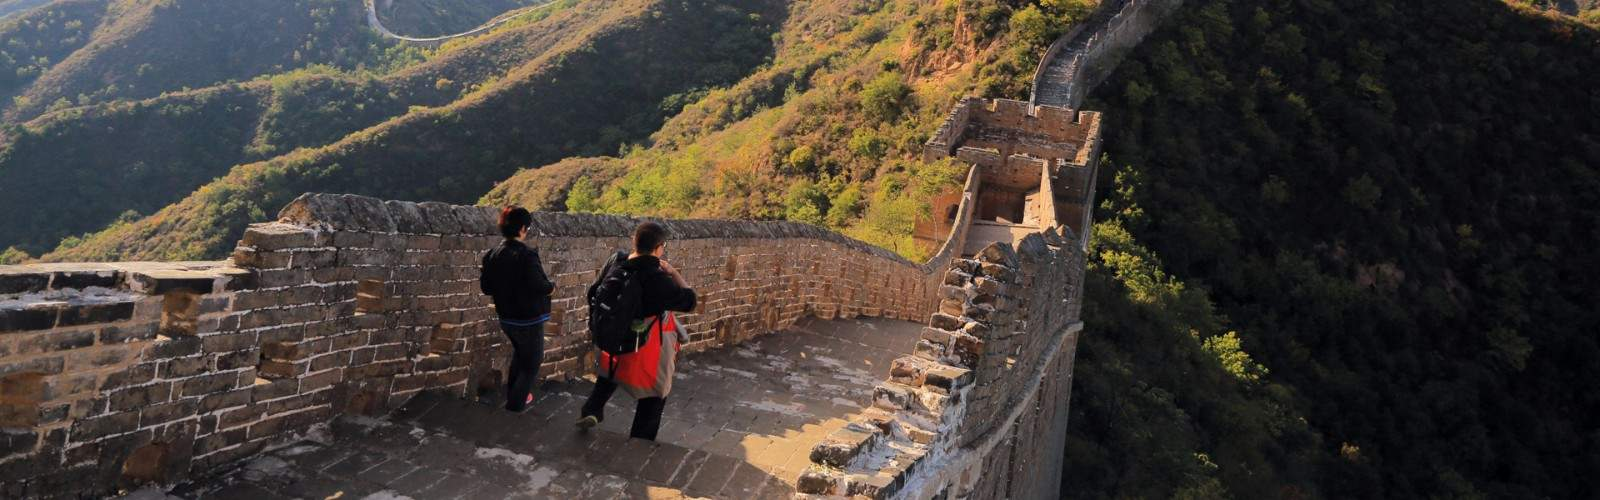 China Explorer Tour Tour | Wendy Wu Tours